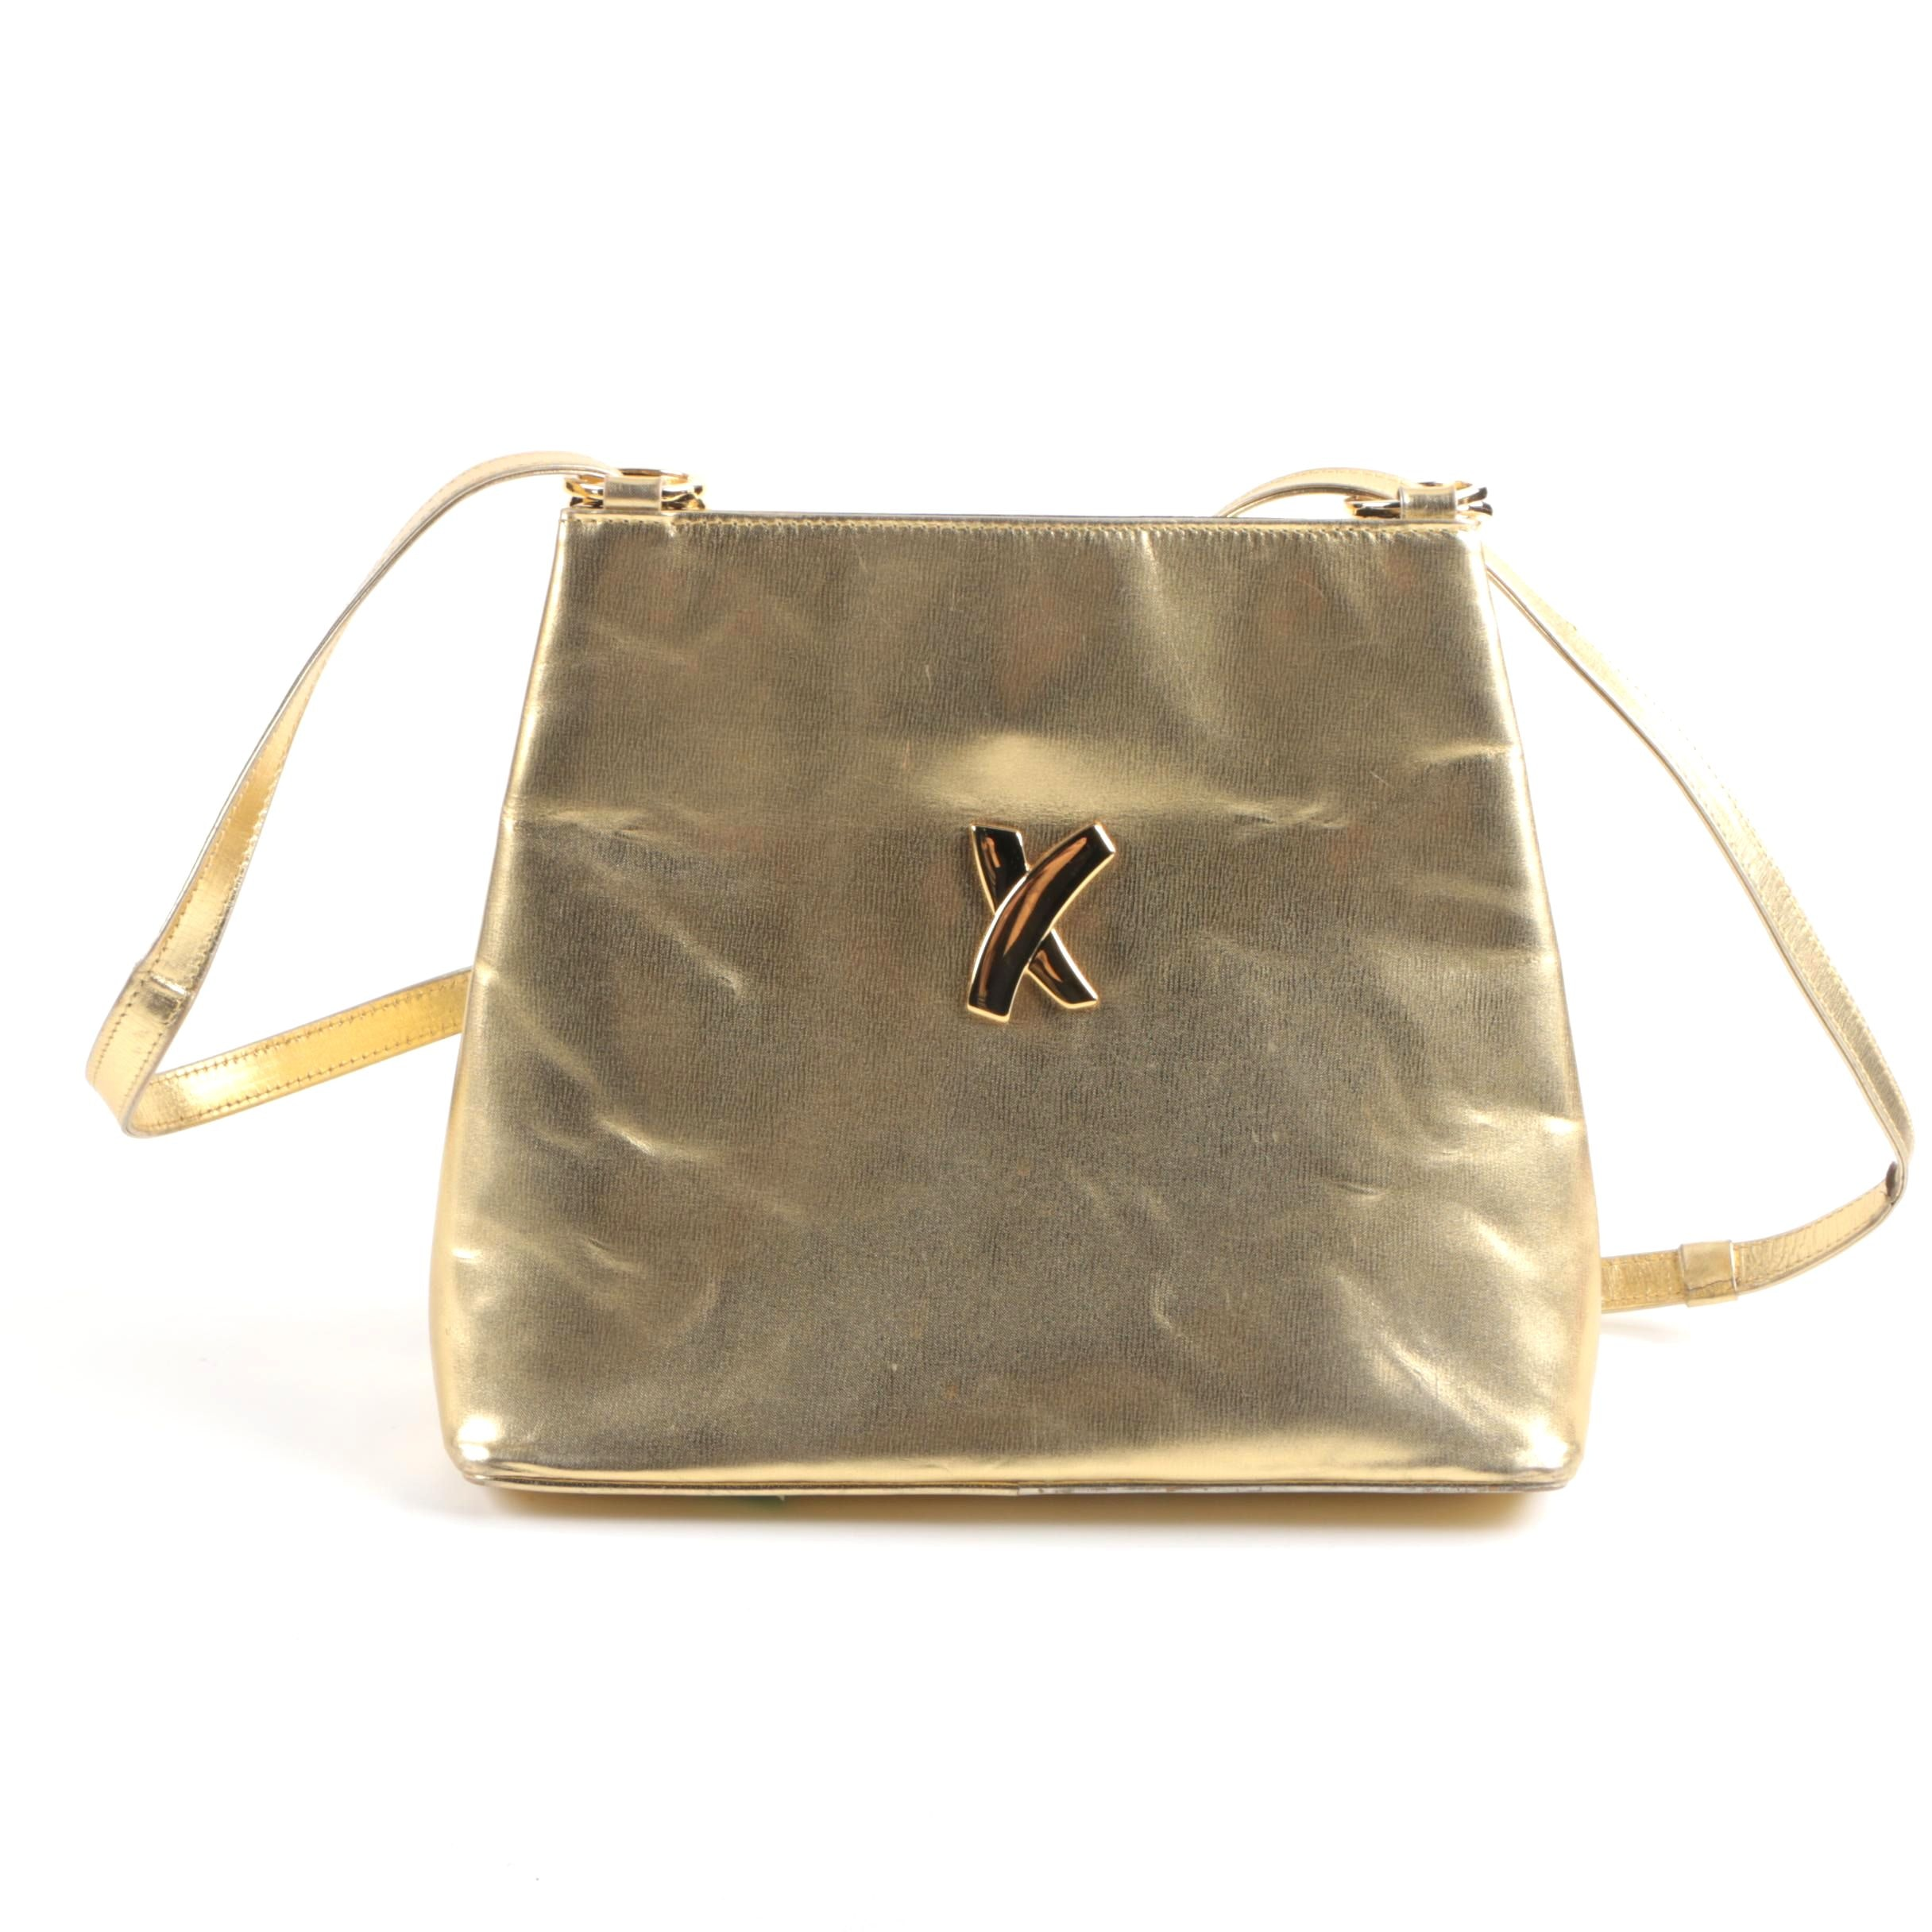 Paloma Picasso Gold Tone Leather Bag